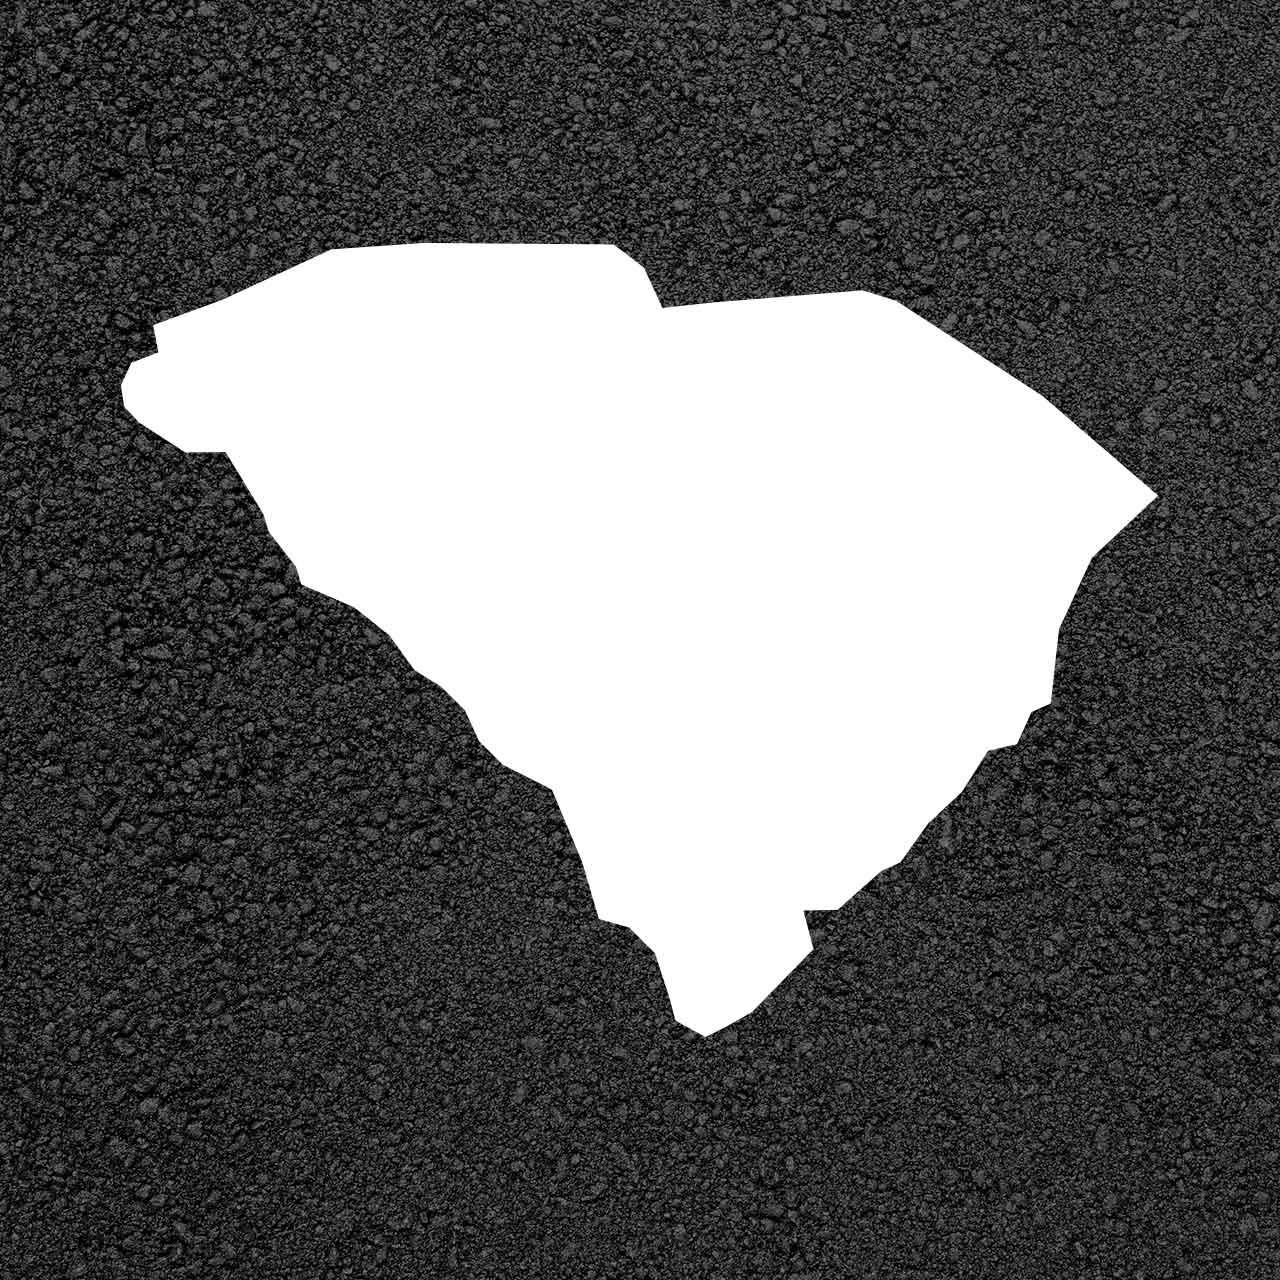 South Carolina State Map Stencil | Stop-Painting.com